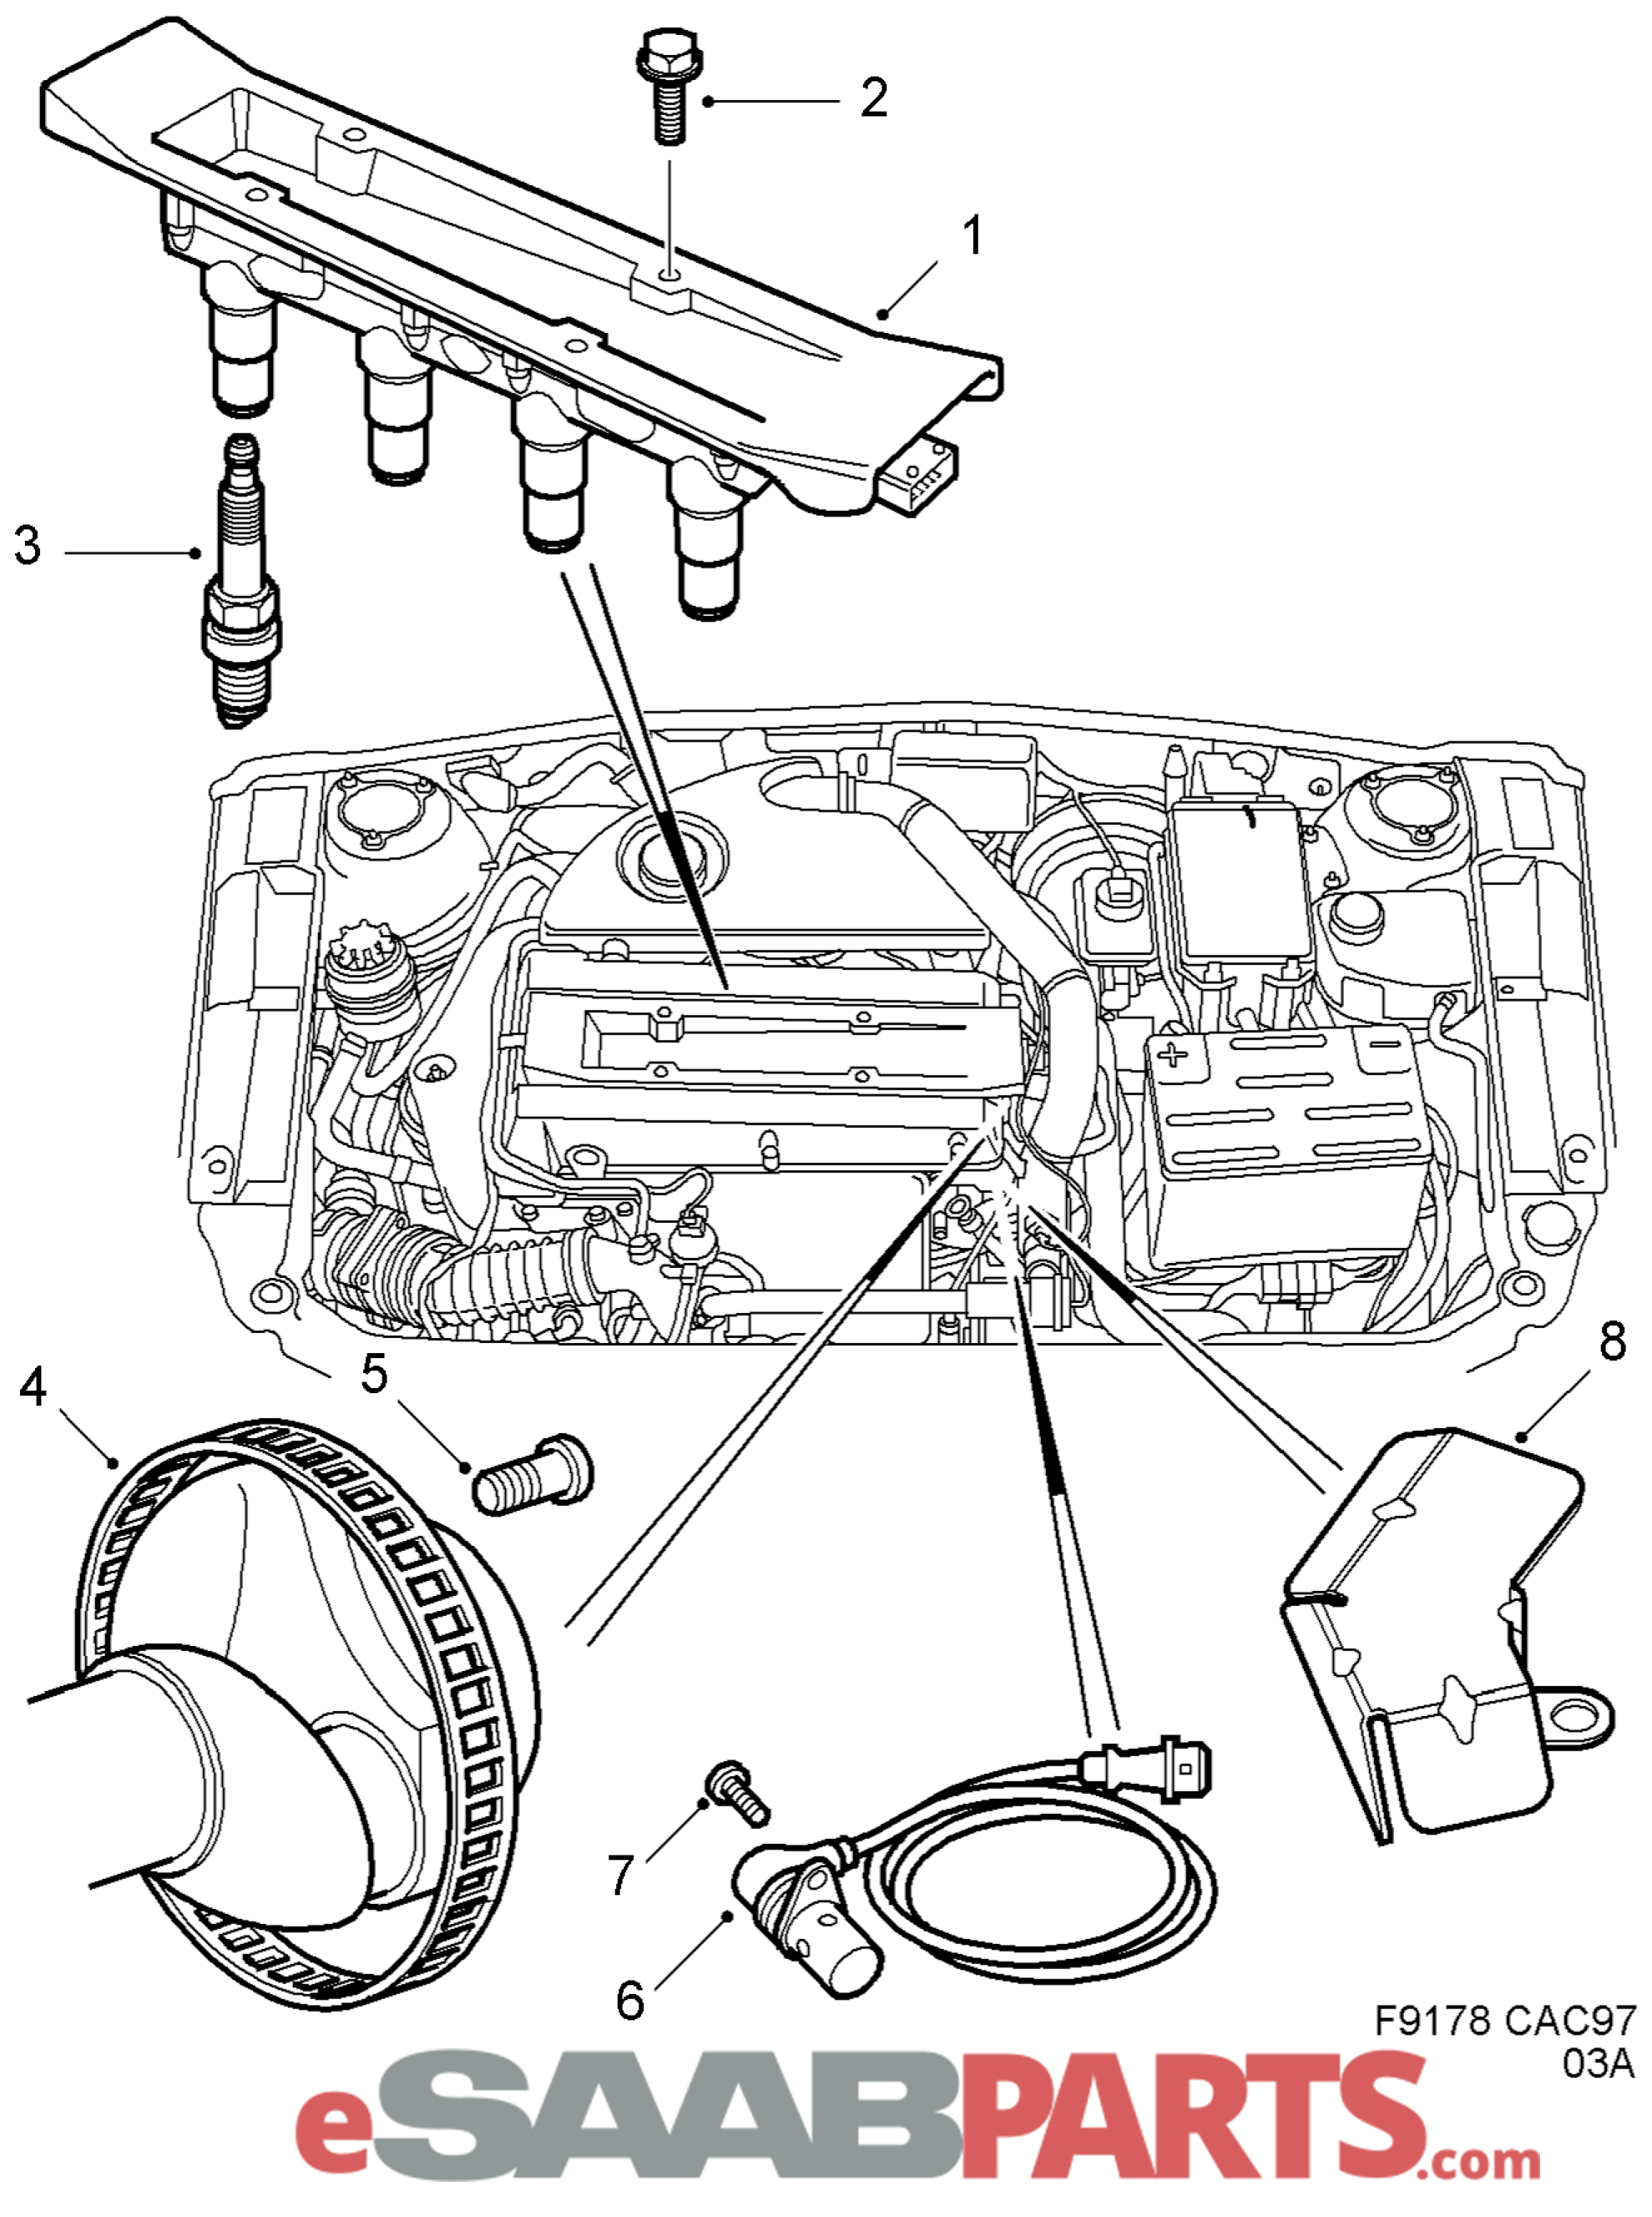 esaabparts com rh esaabparts com Wiring Diagrams Saab C900 For 2003 Saab 9  3 Wiring Diagram